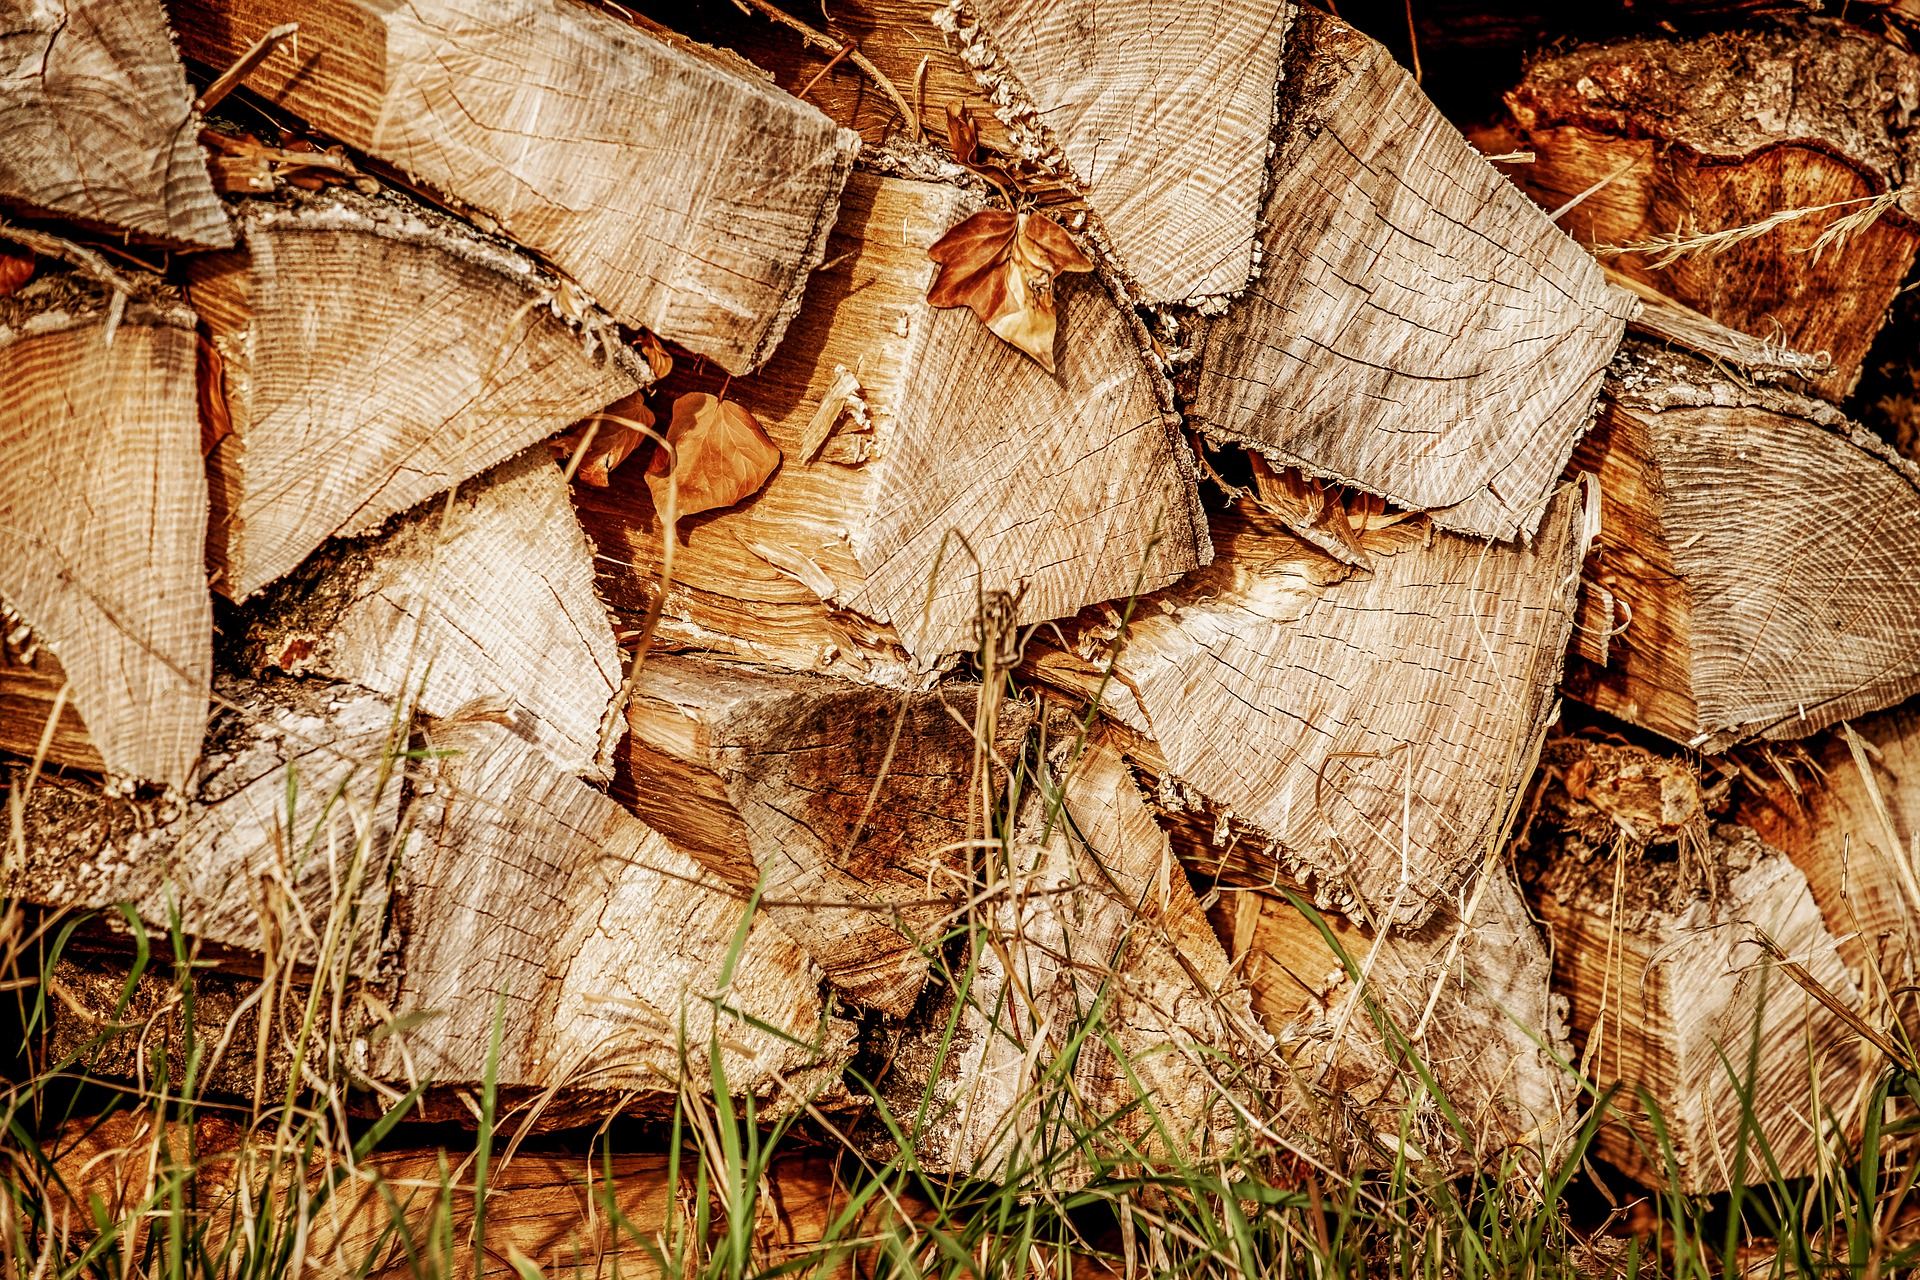 Firewood Arranged In A Stack 202161931027